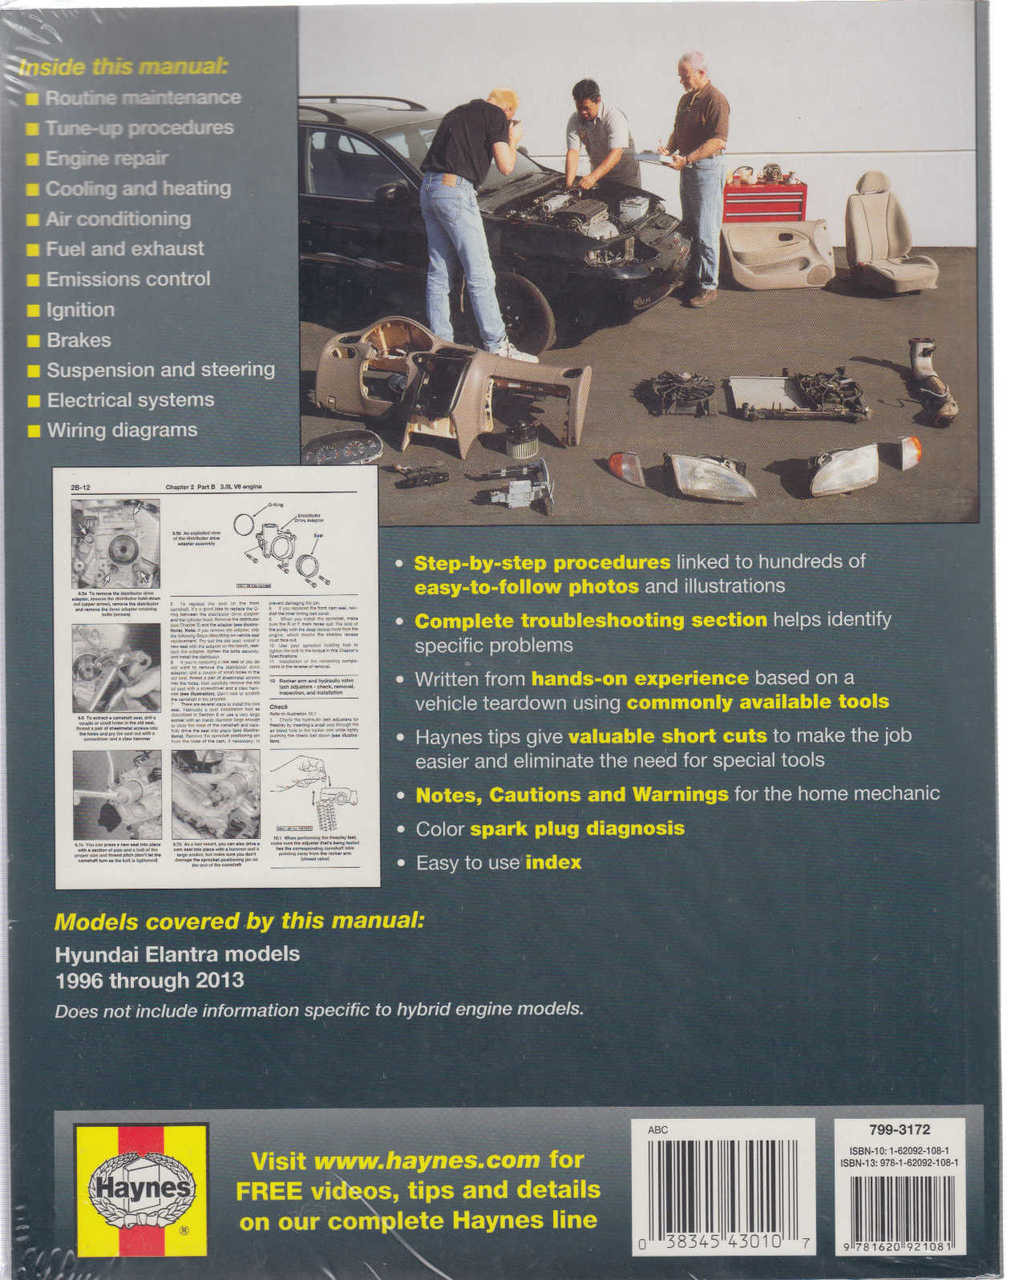 hyundai elantra lantra 1996 2013 workshop manual [ 1023 x 1280 Pixel ]